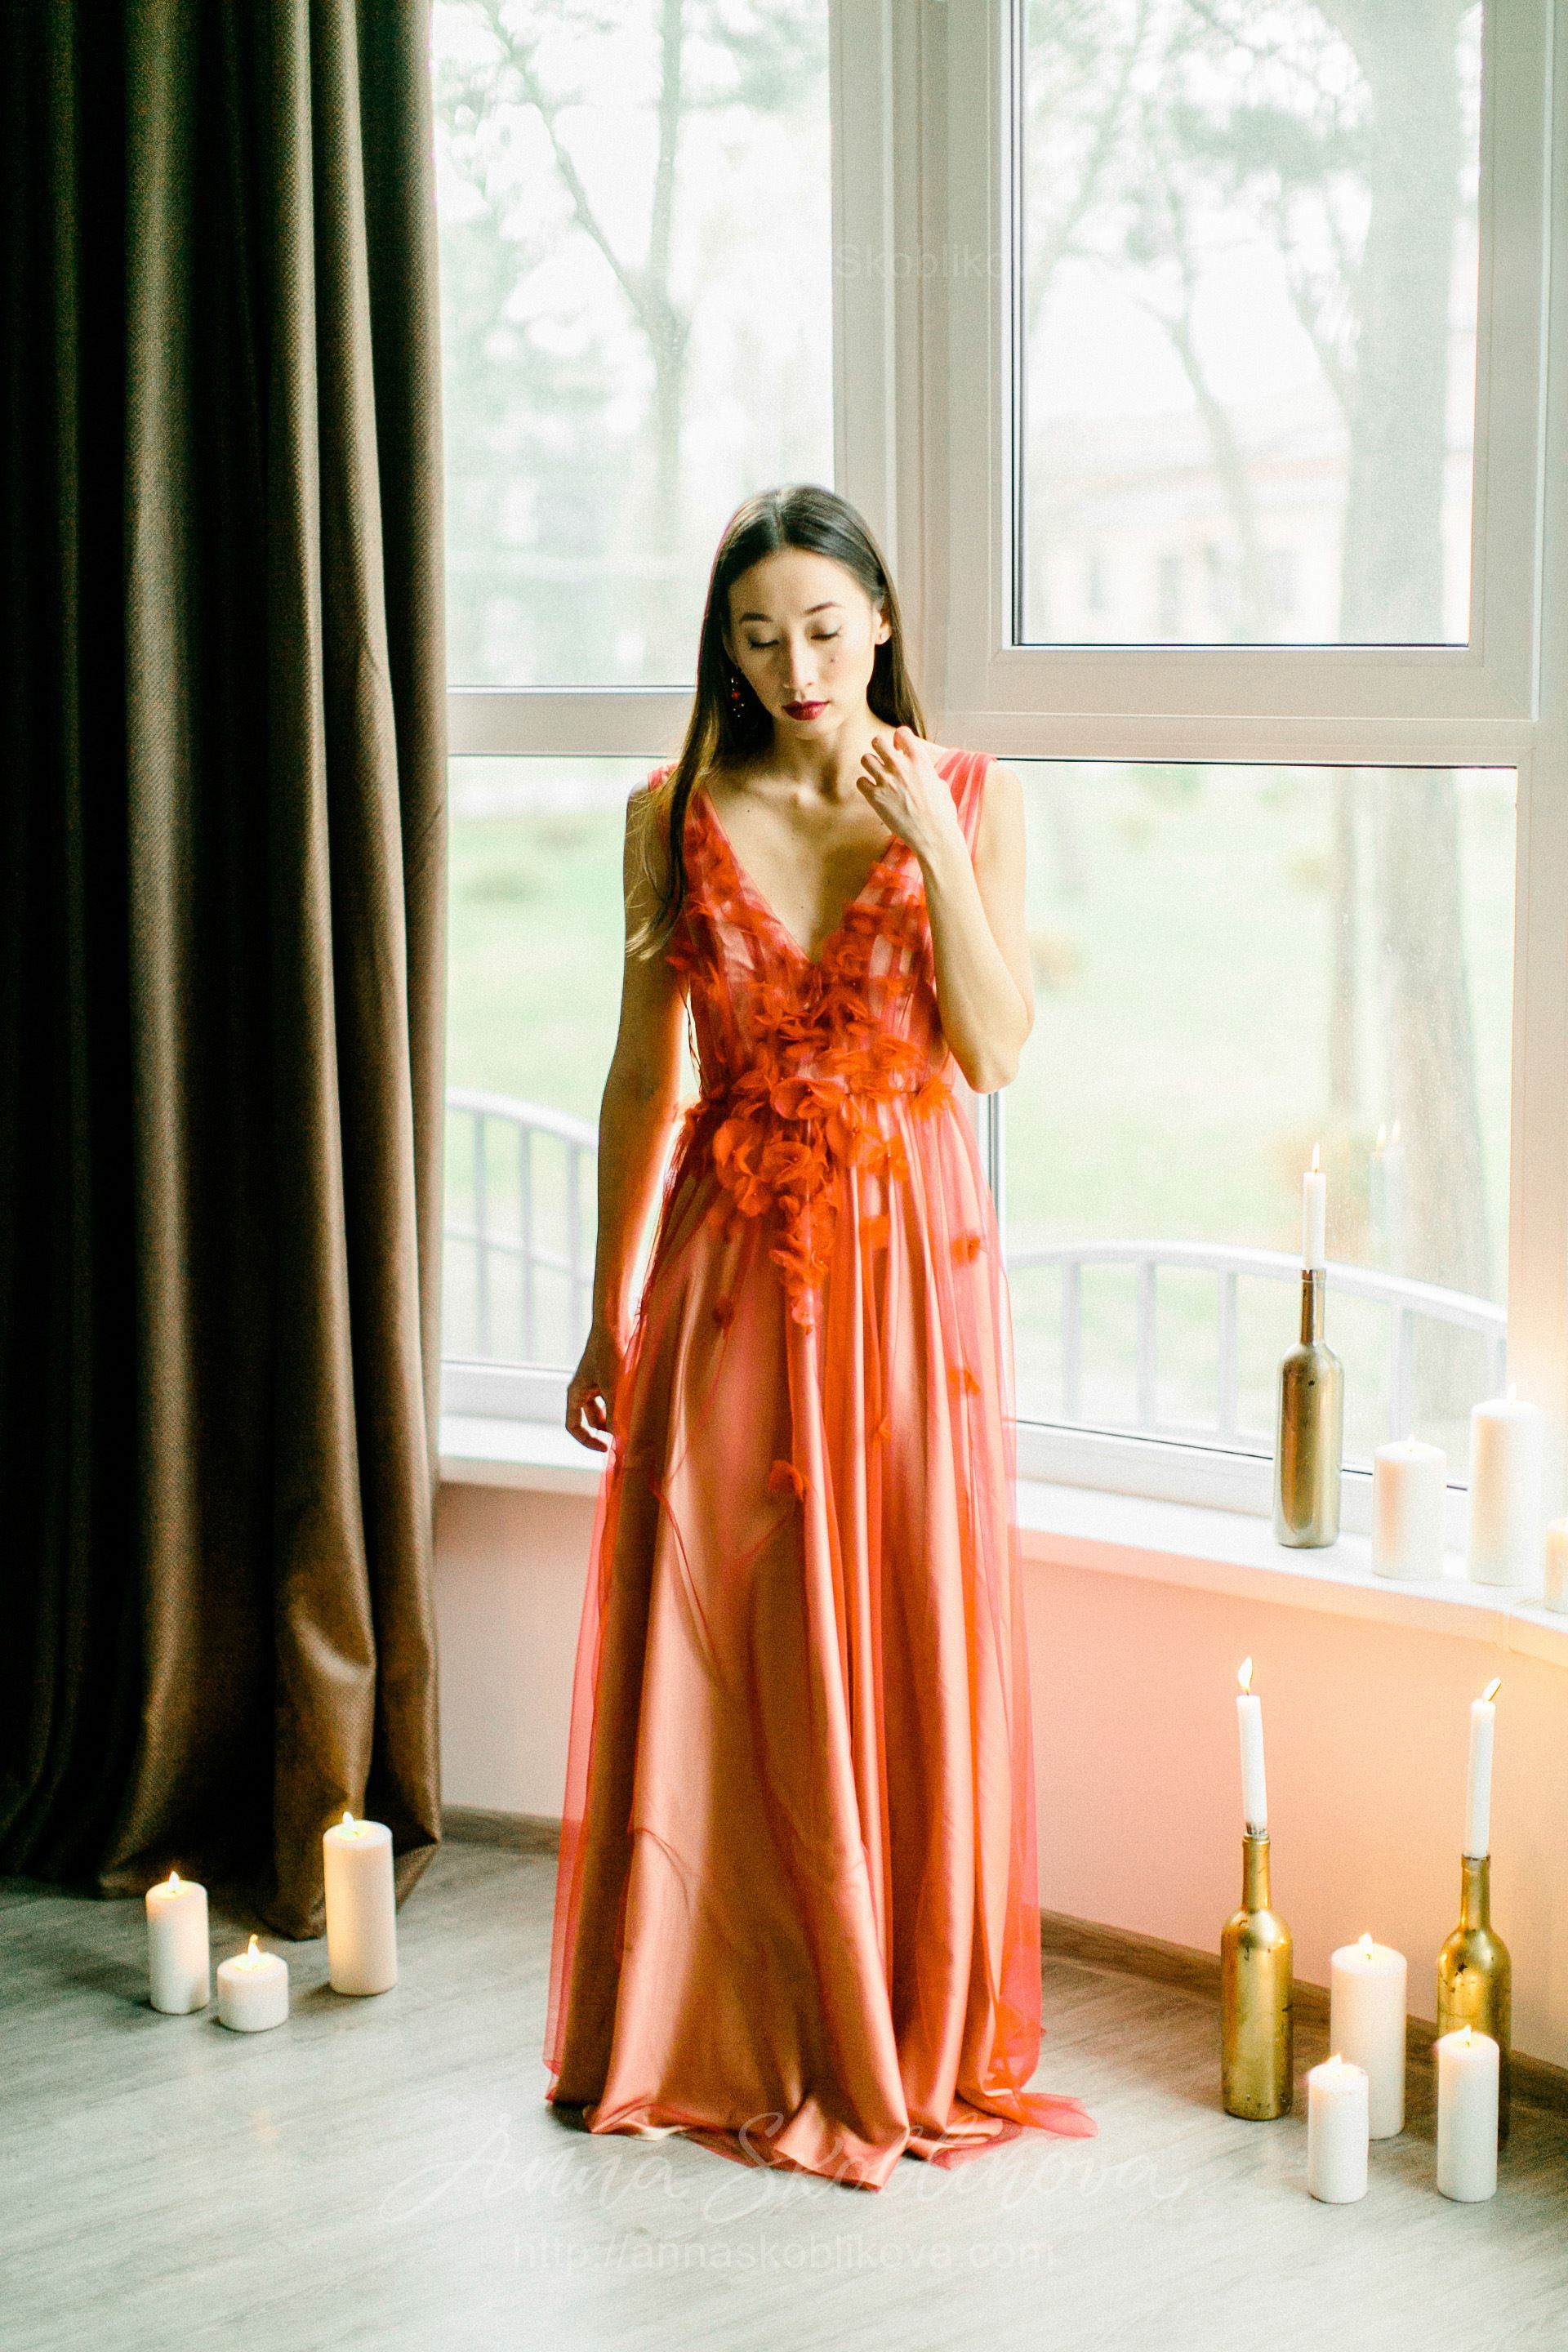 Red Wedding Dresses.Offbeat Red Wedding Dress